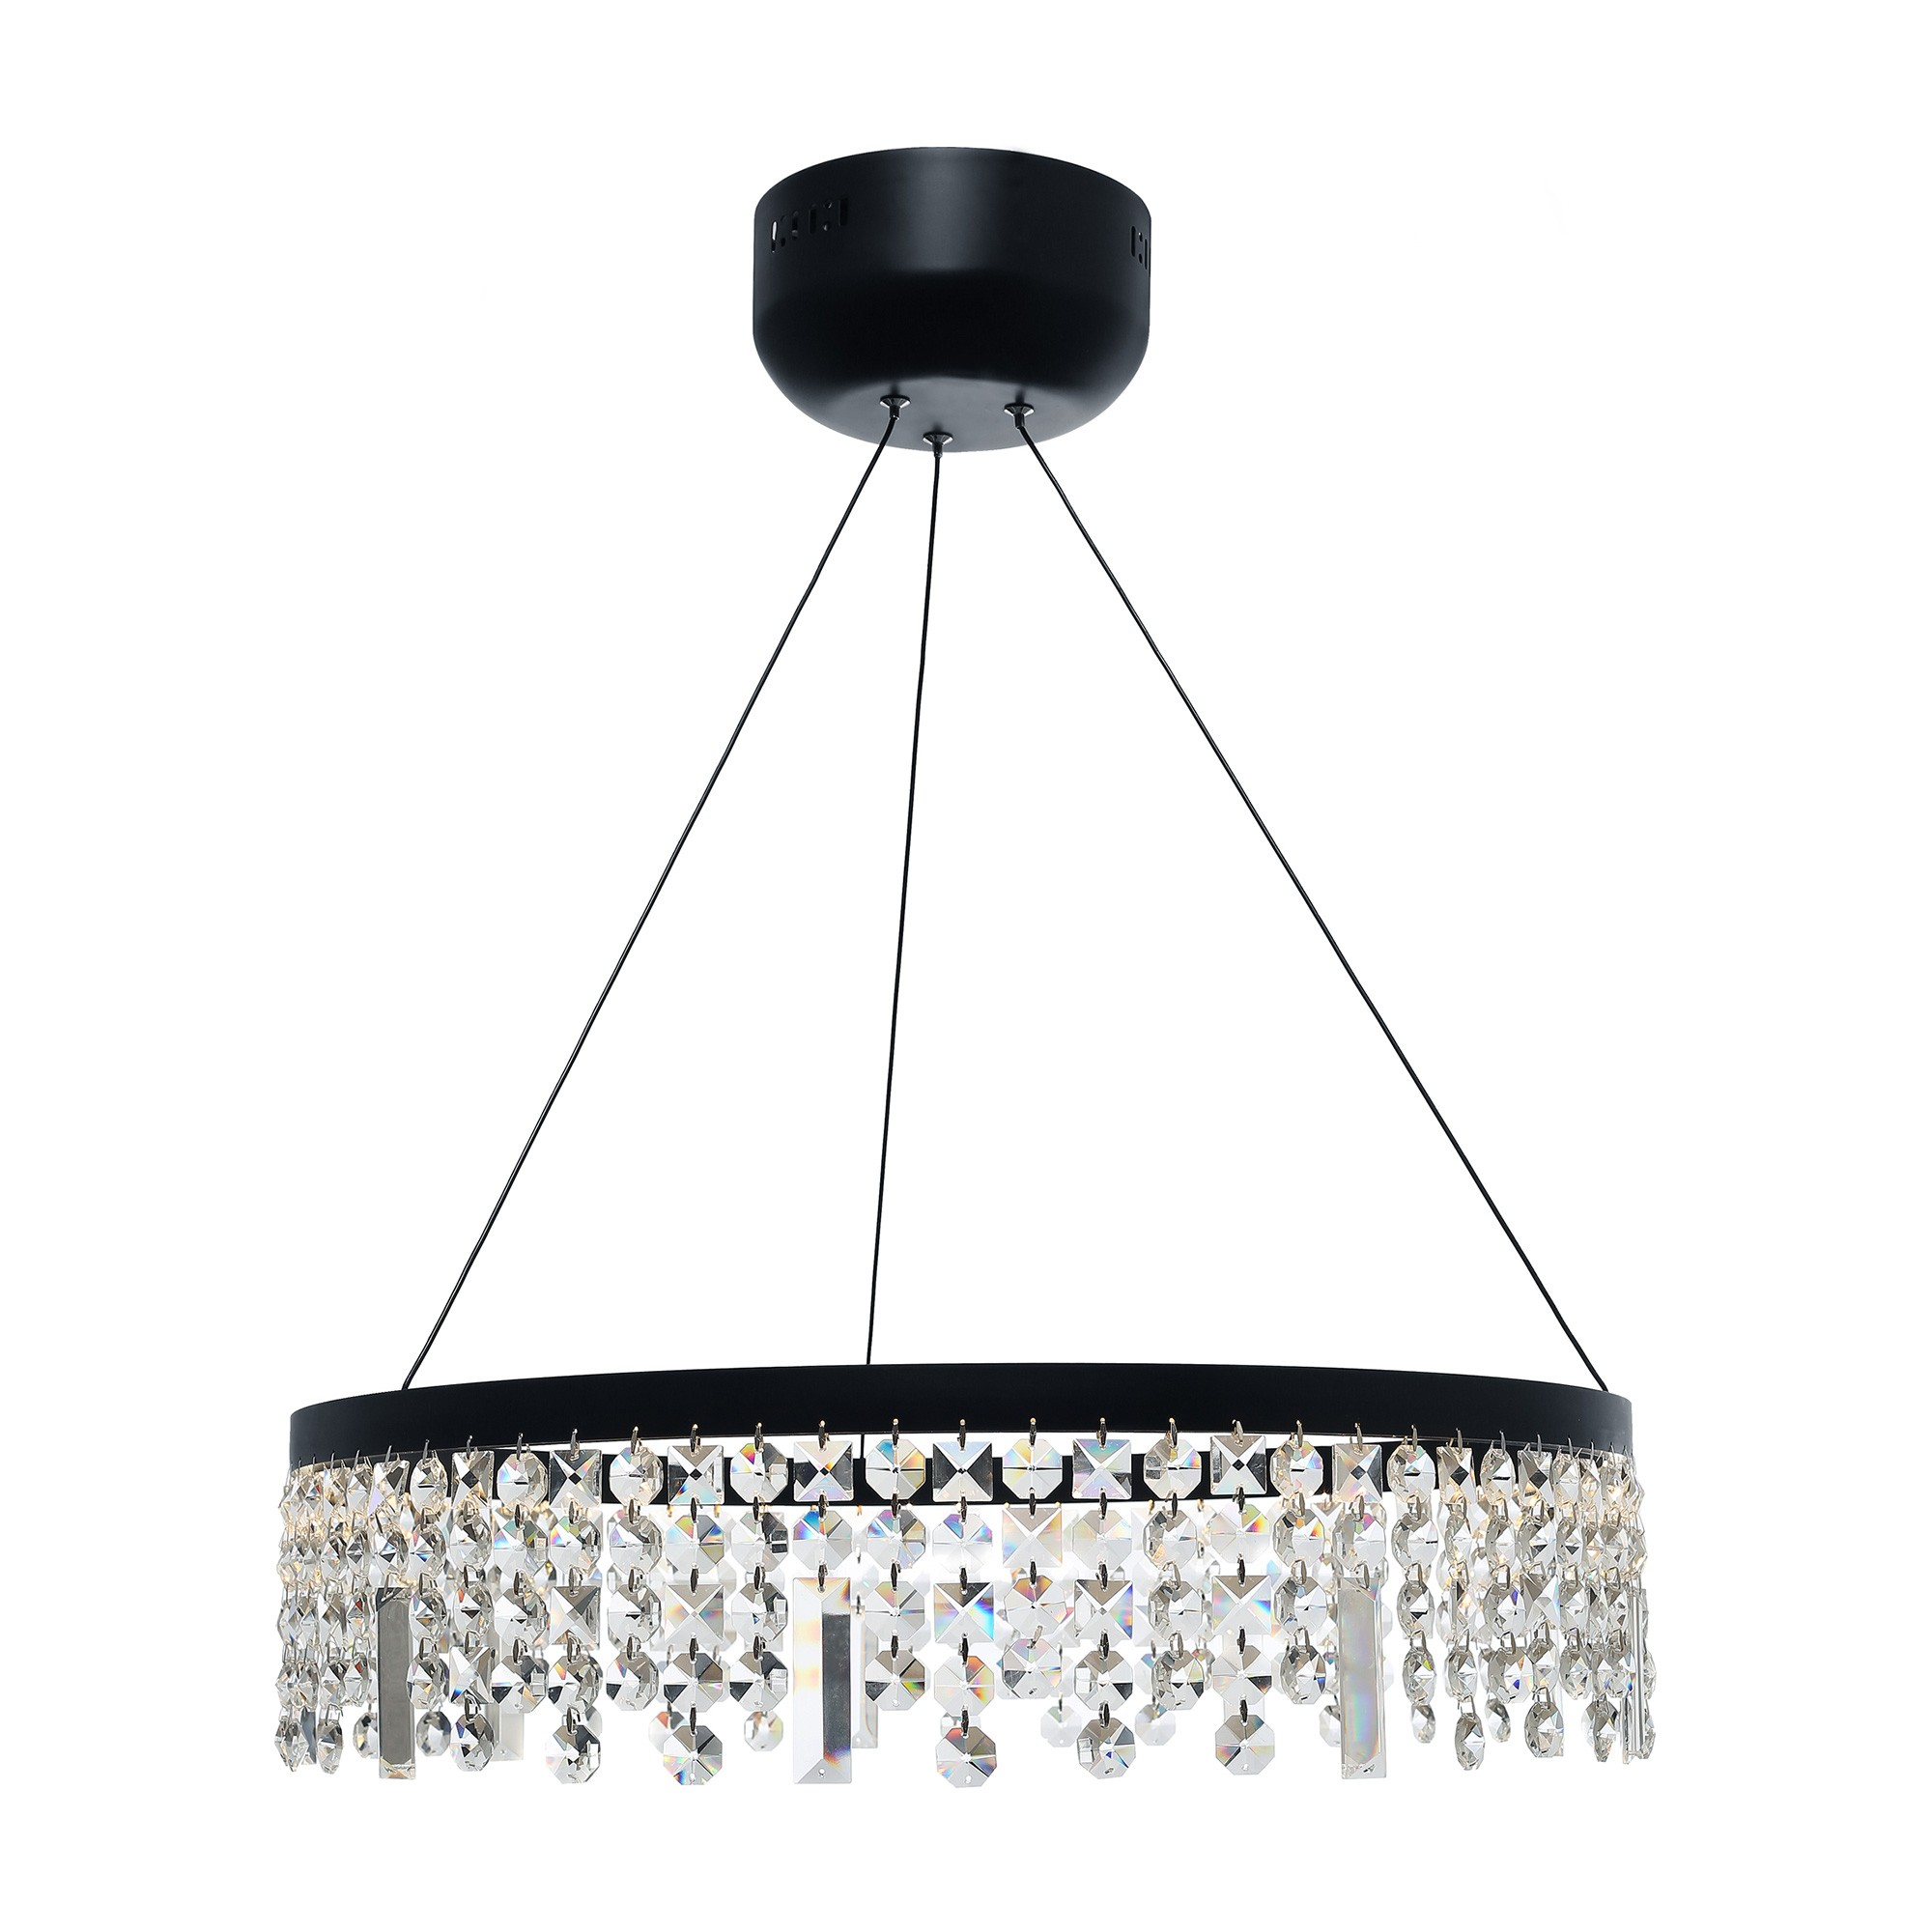 Majestic Crystal Droplet LED Pendant Light, Large, Black